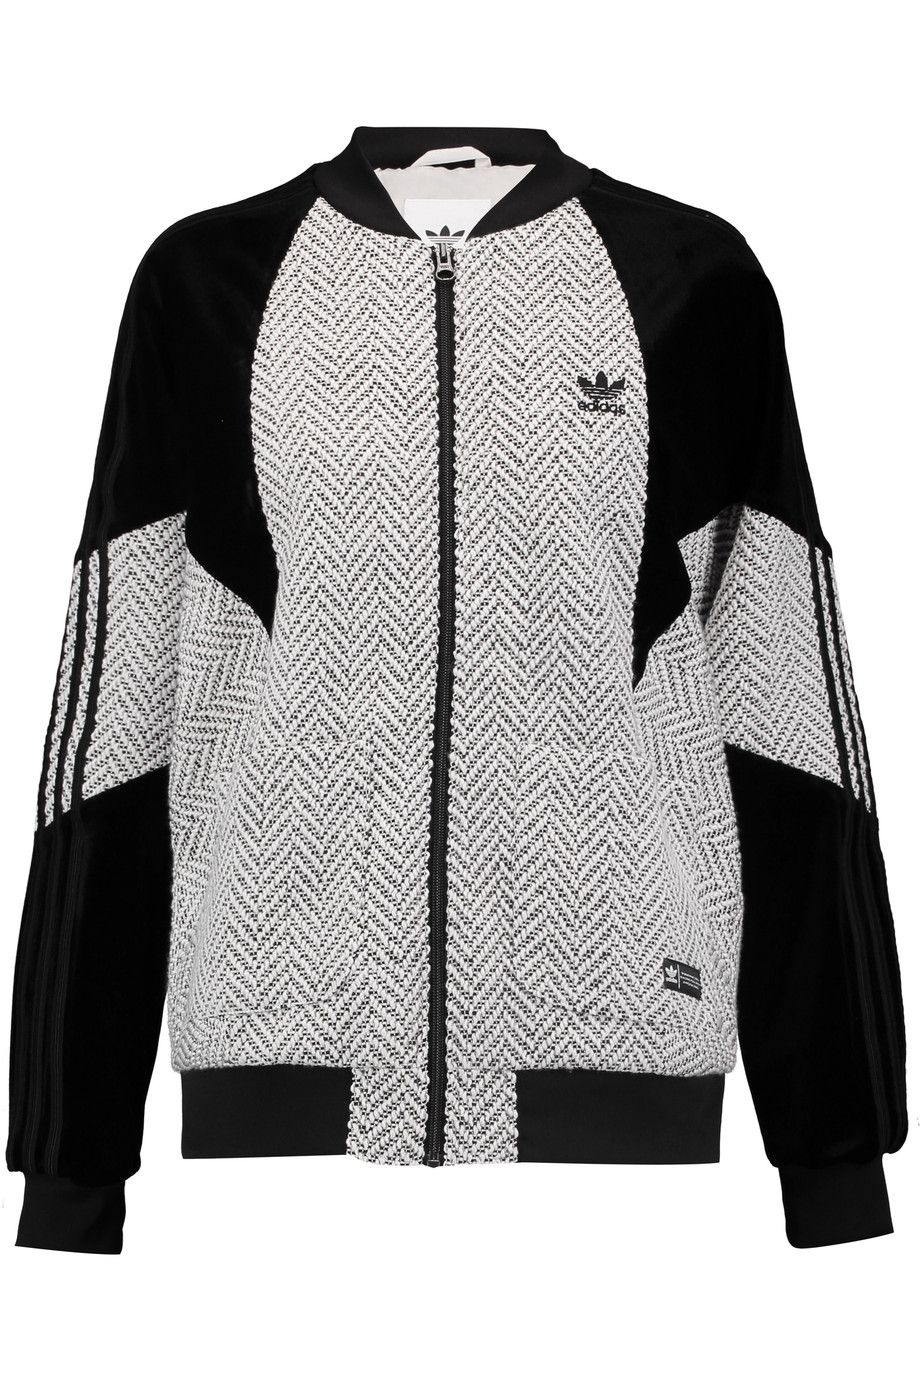 056db098f86 Discount designer clothes for women sale. ADIDAS ORIGINALS . # adidasoriginals #cloth #jacket